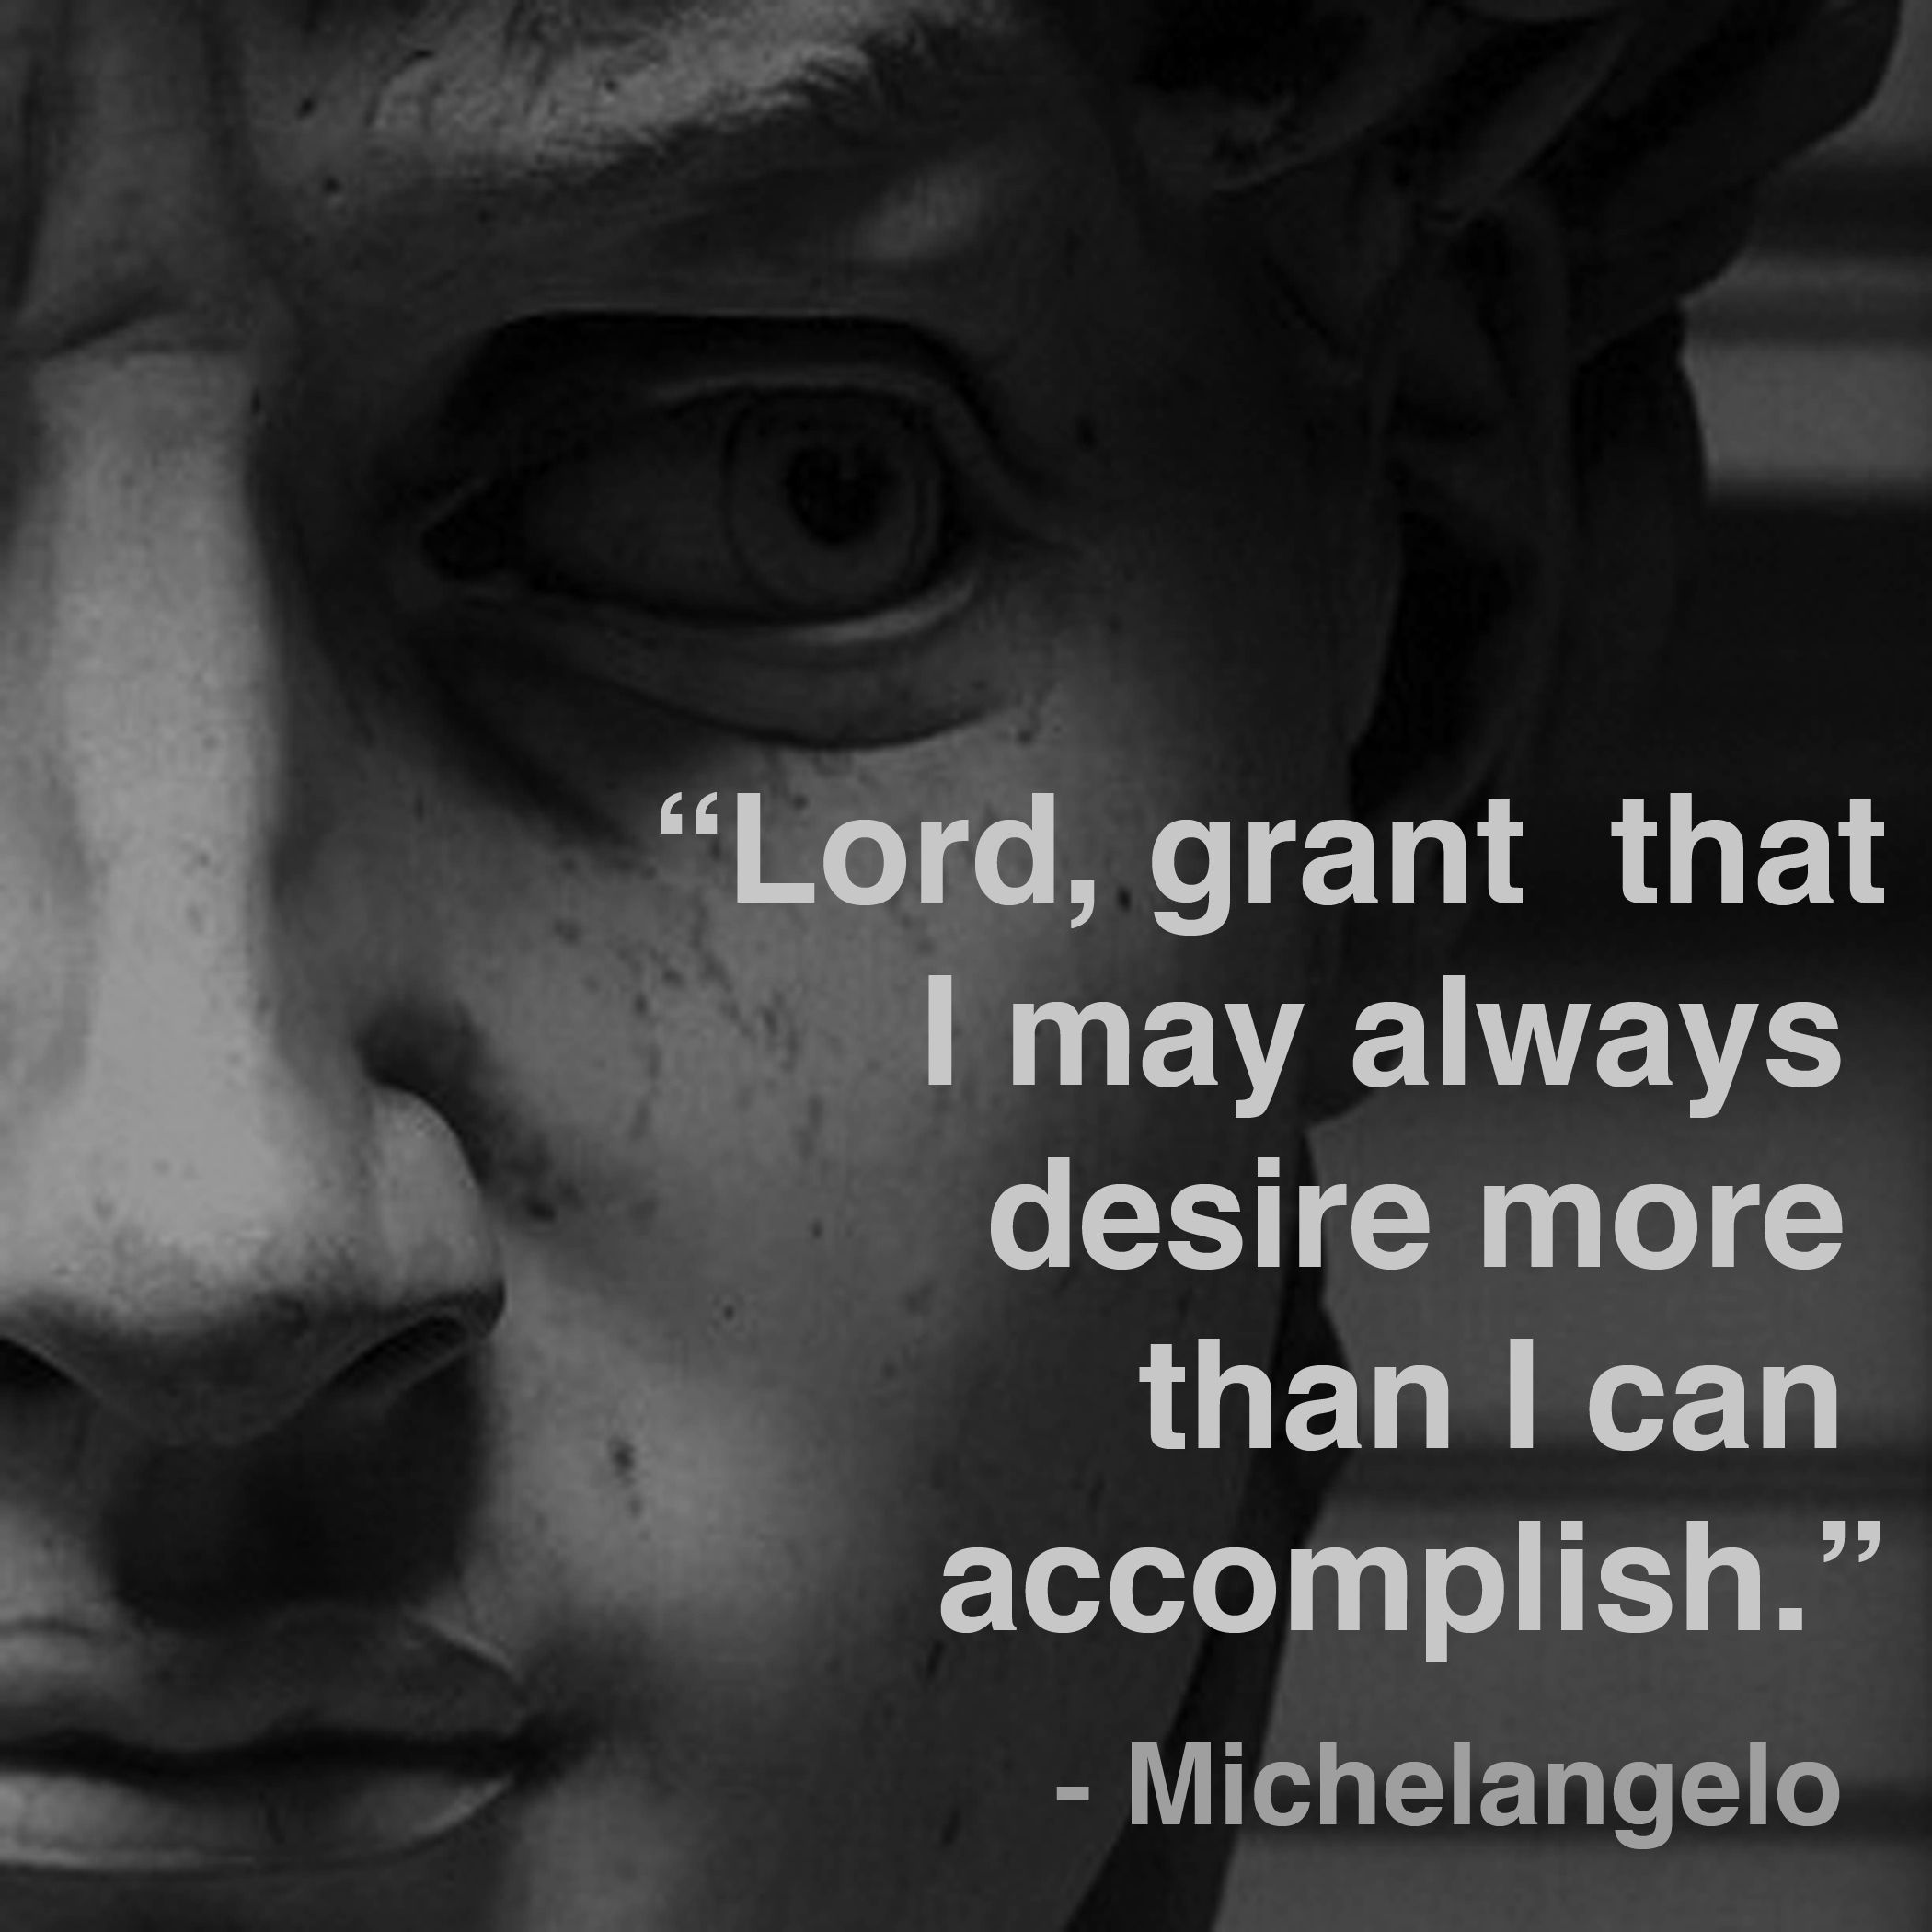 Michelangelo Quotes Fair Lord Grant That I May Always Desire More Than I Can Accomplish